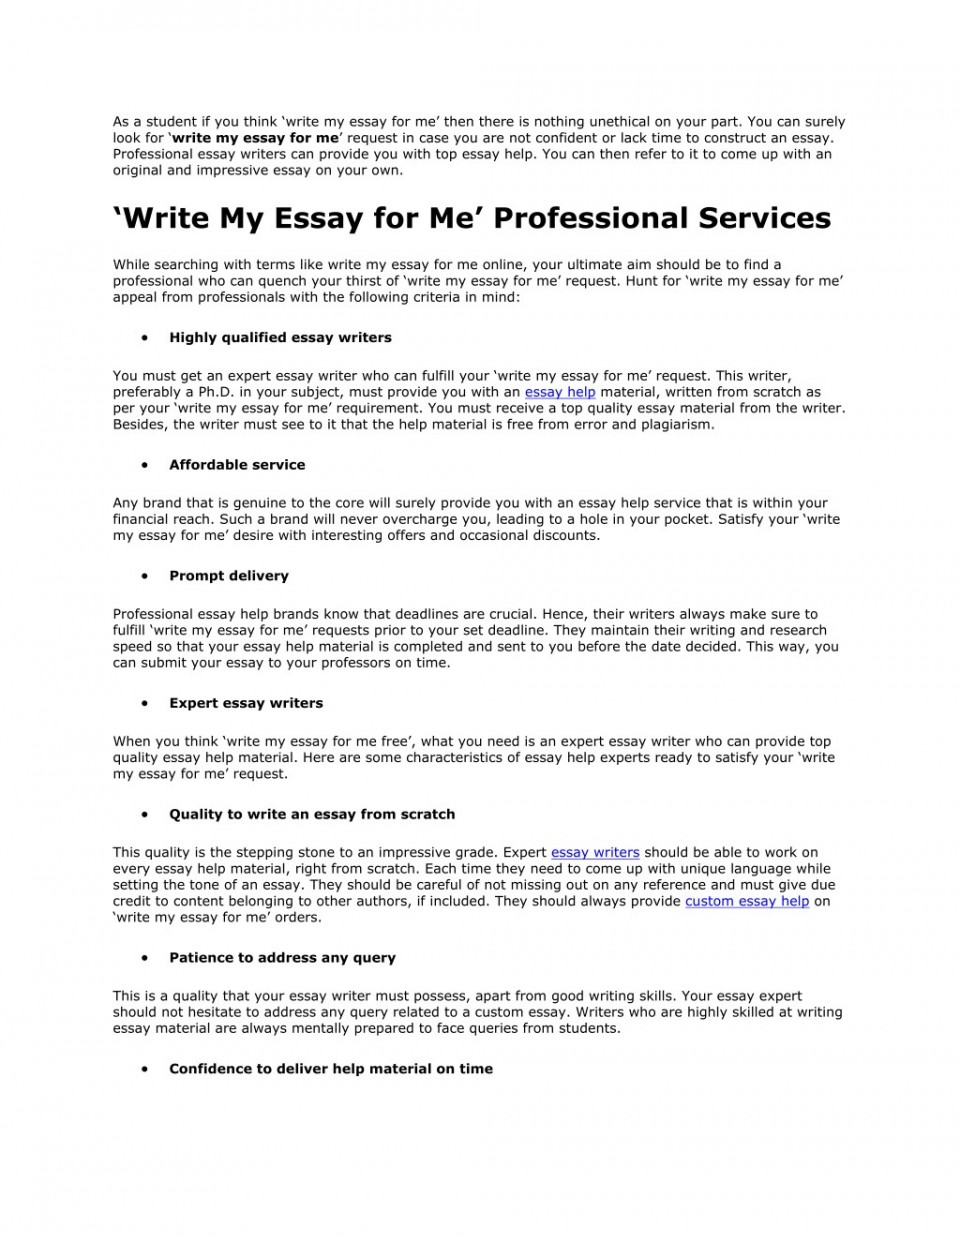 006 Essay Example Write For Me As Student If You Think My Amazing Discount Code Online Free 960